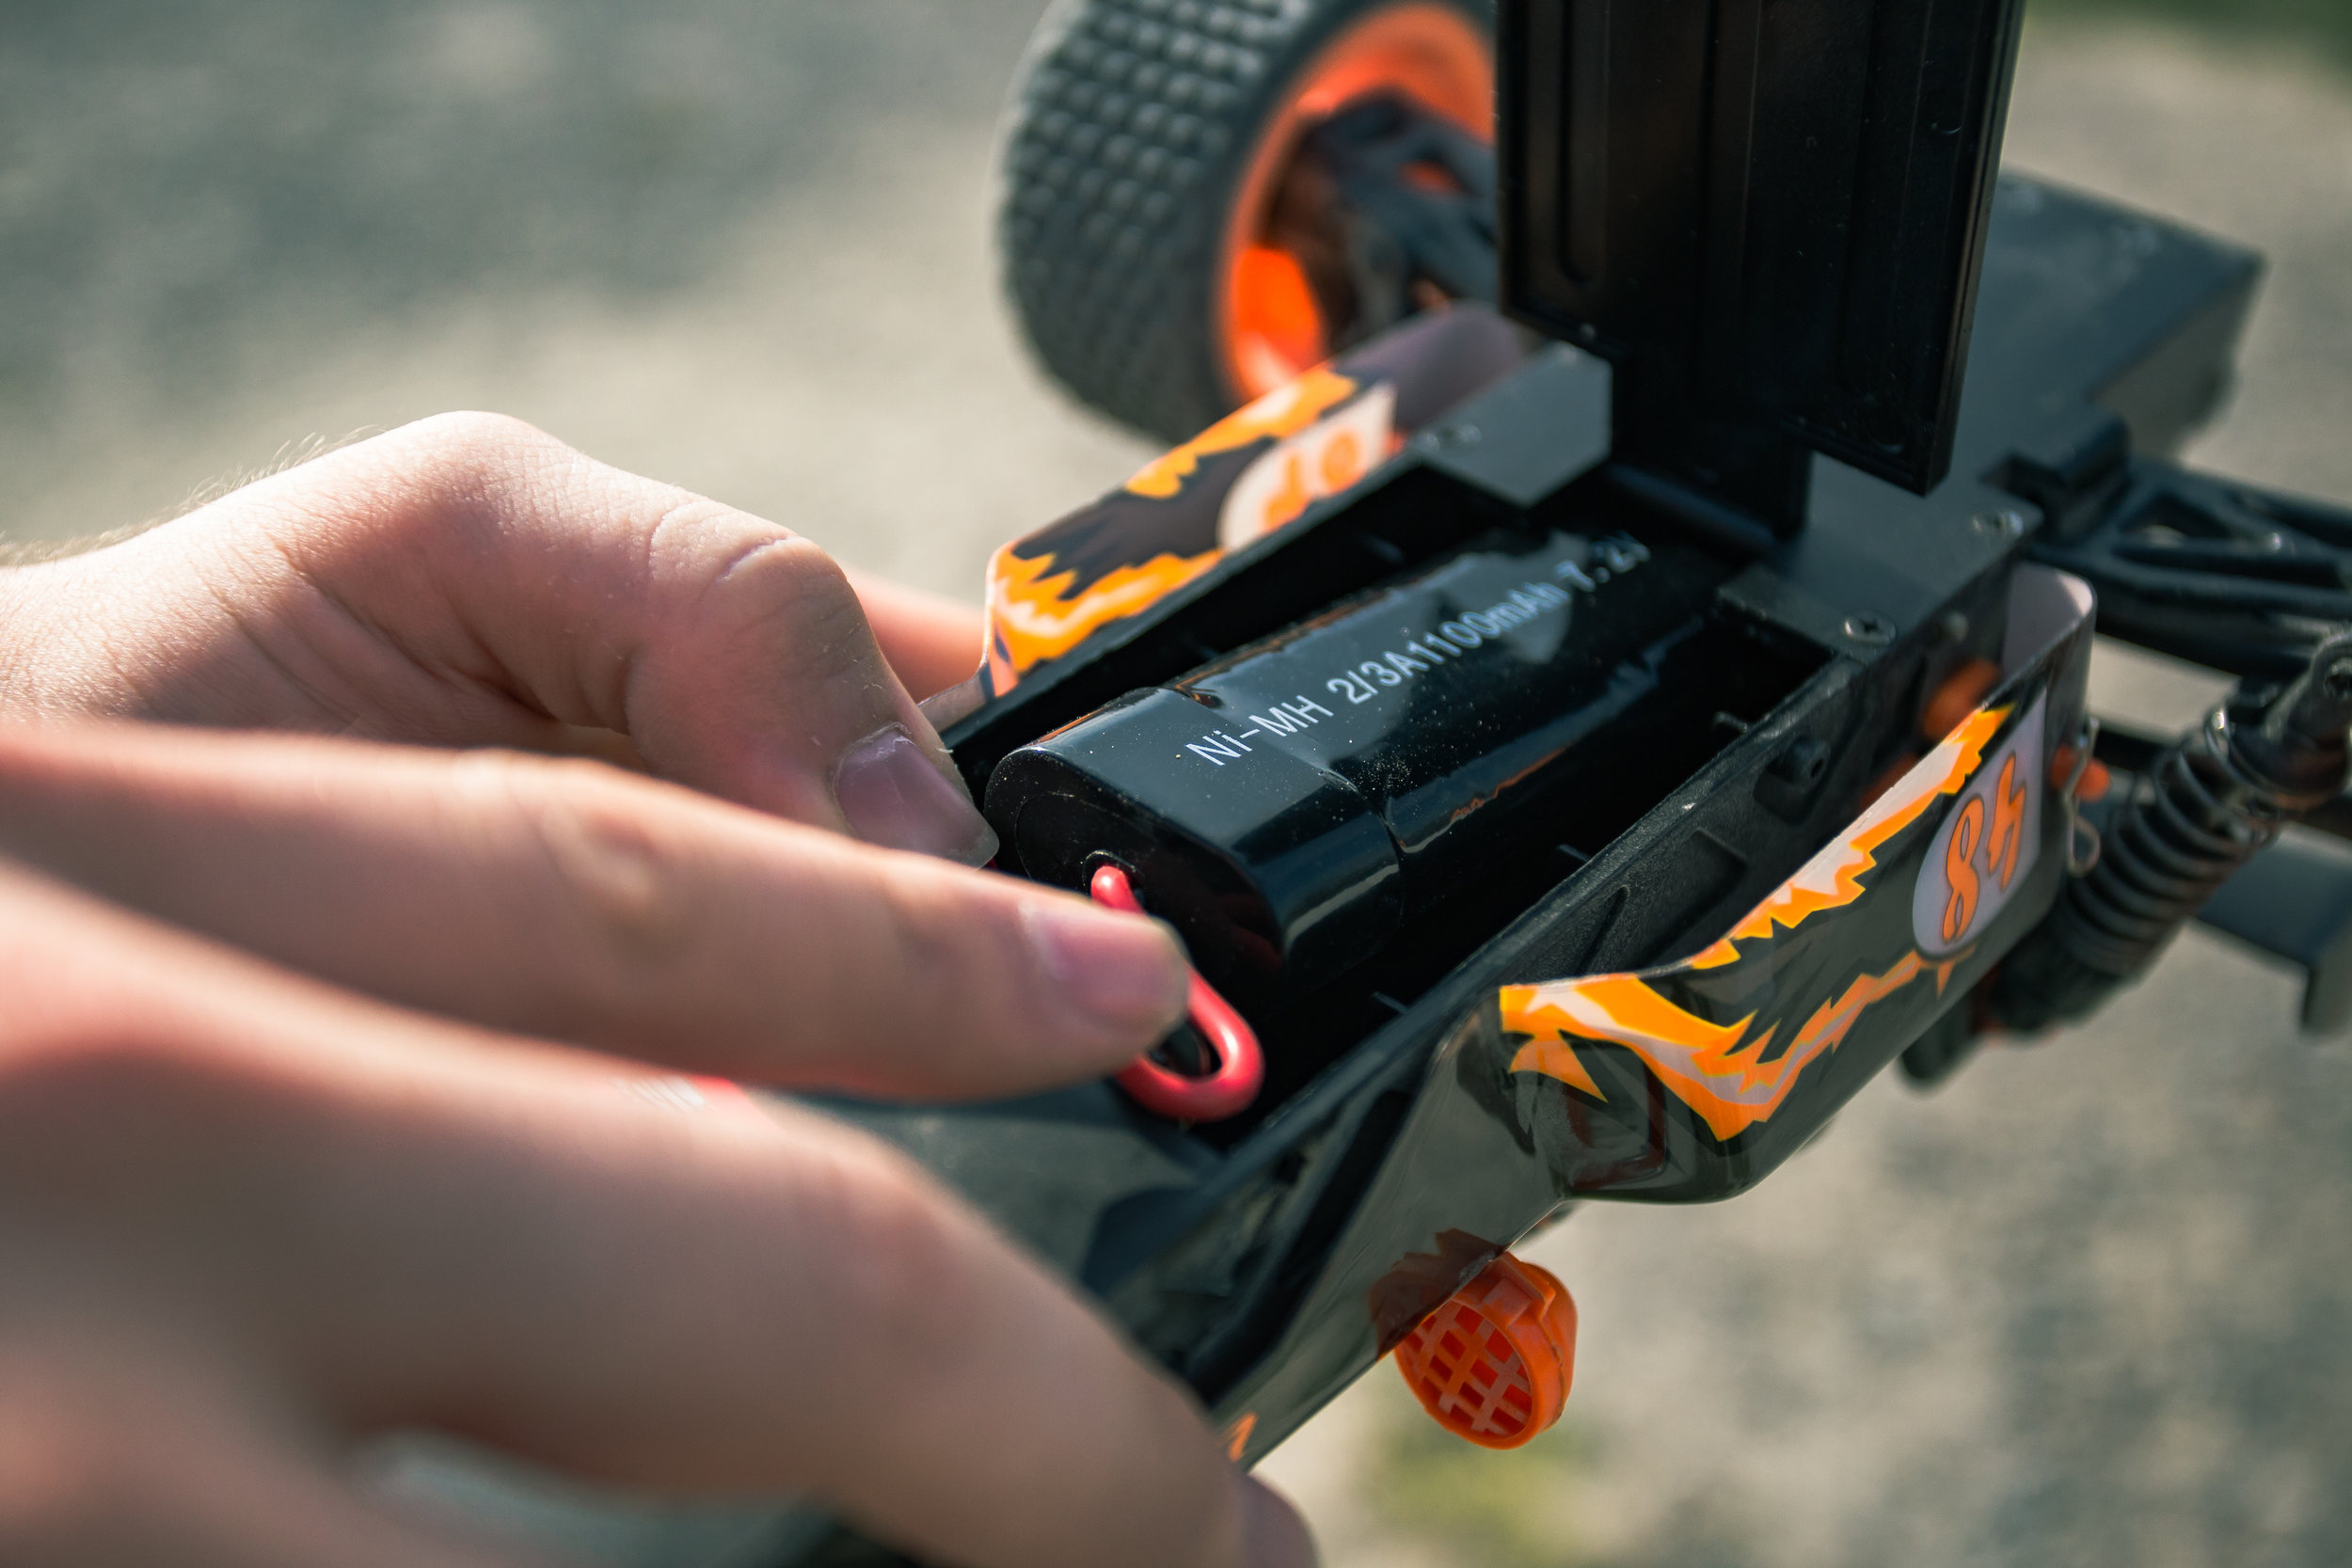 Easy Battery Swap - Easily access the battery through the underside of the chassis. Swap batteries easily on the go!